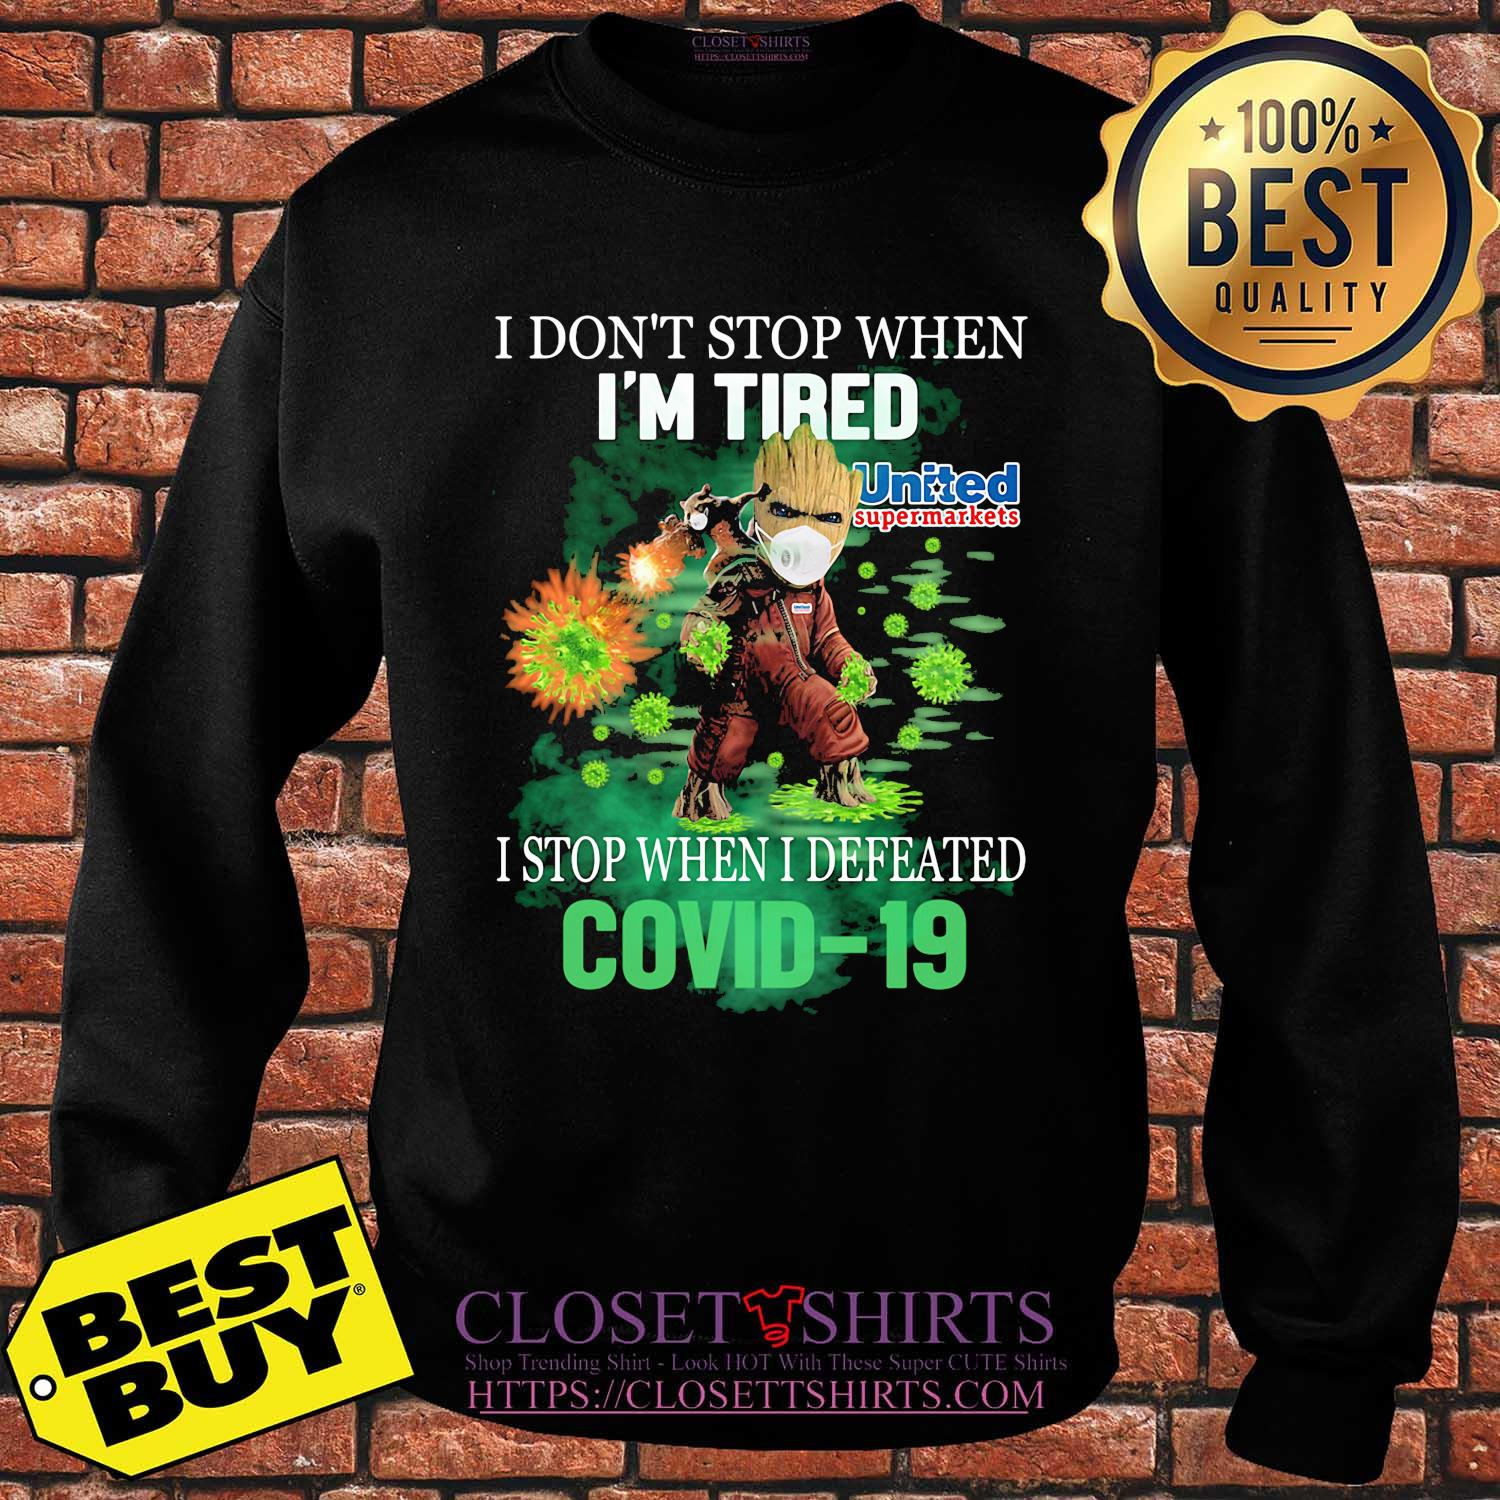 Baby groot I don't stop when I'm tried united supermarkets I stop when I defeated covid-19 shirt